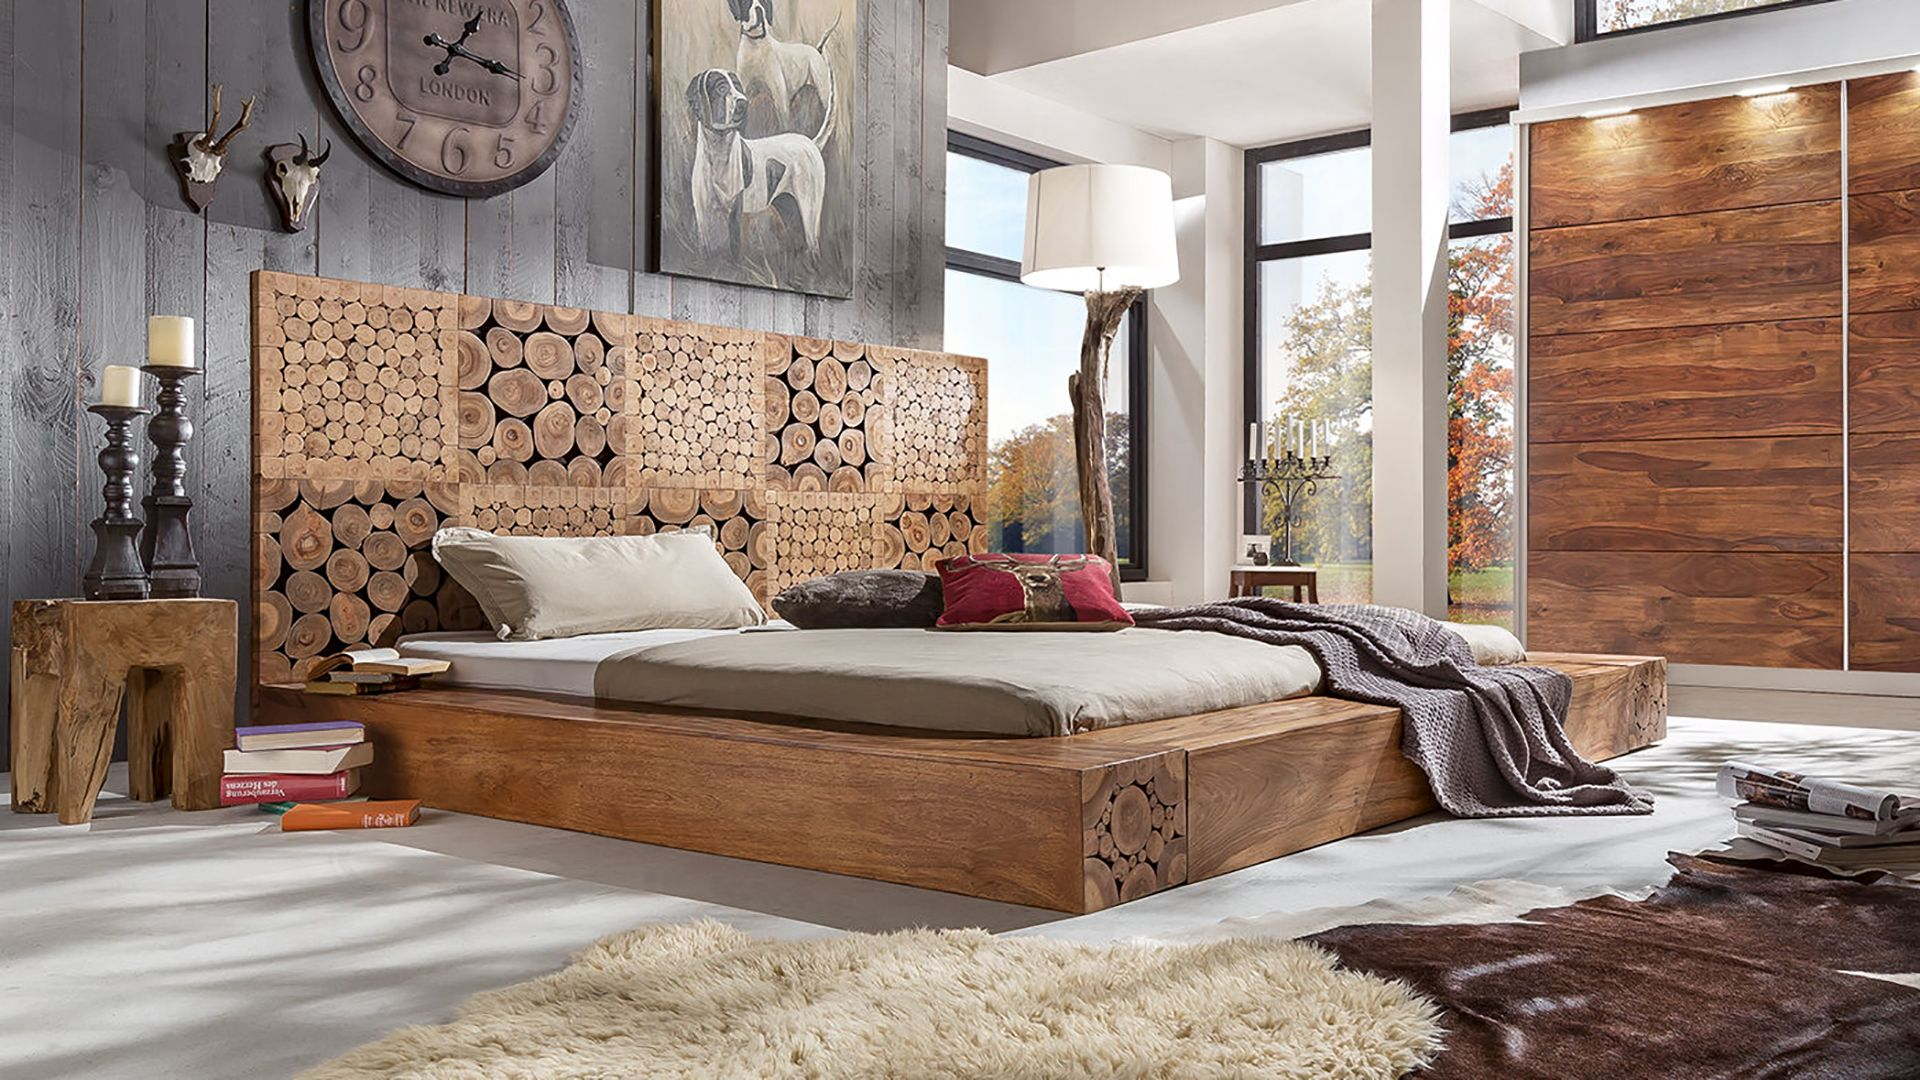 Solid Wood INDIANA WoodLog Bed | Latest Trends & Design in ...